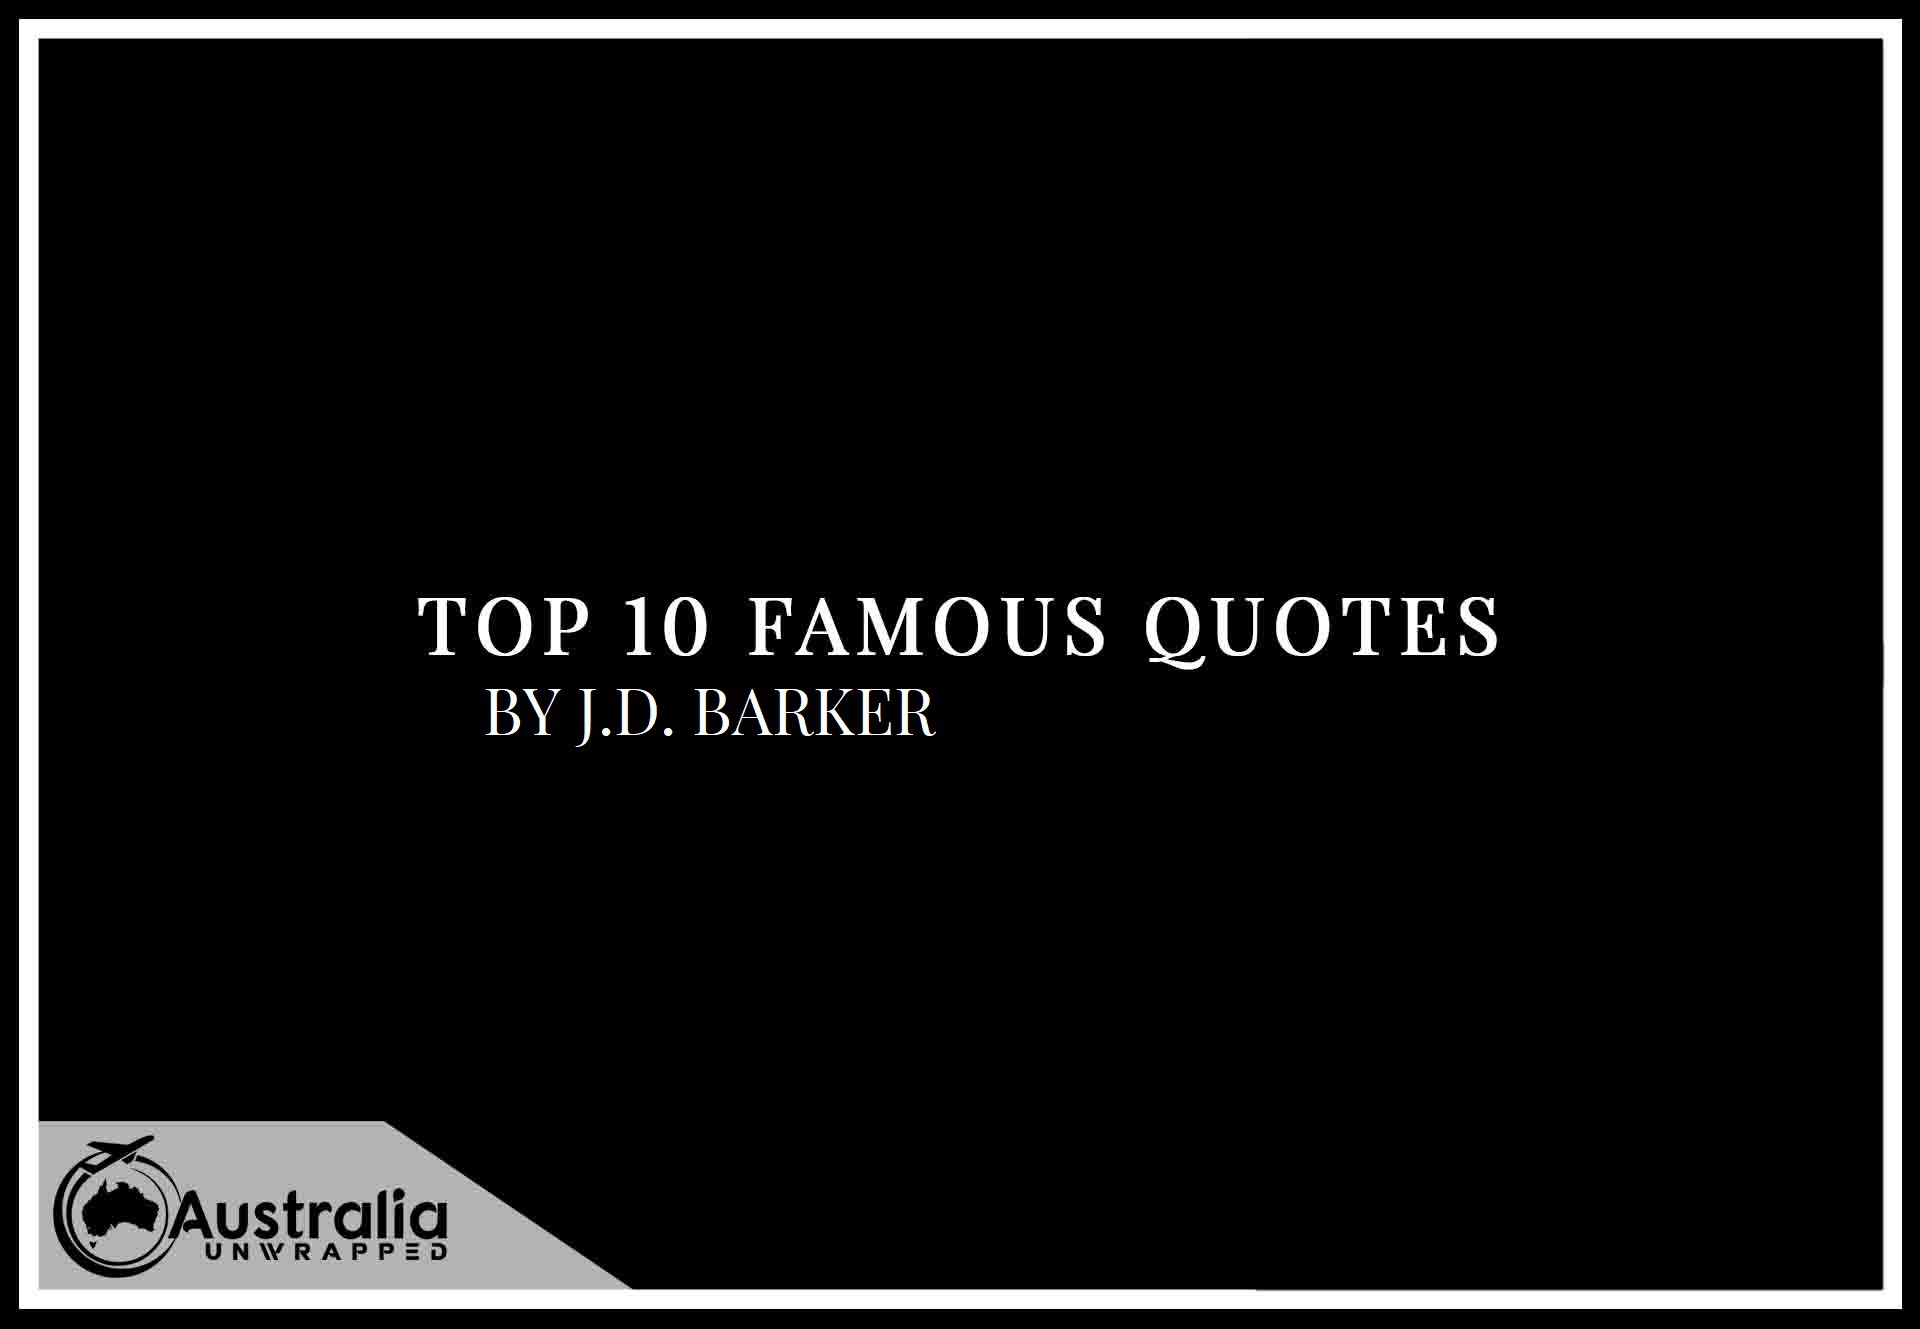 Top 10 Famous Quotes by Author J.D. Barker